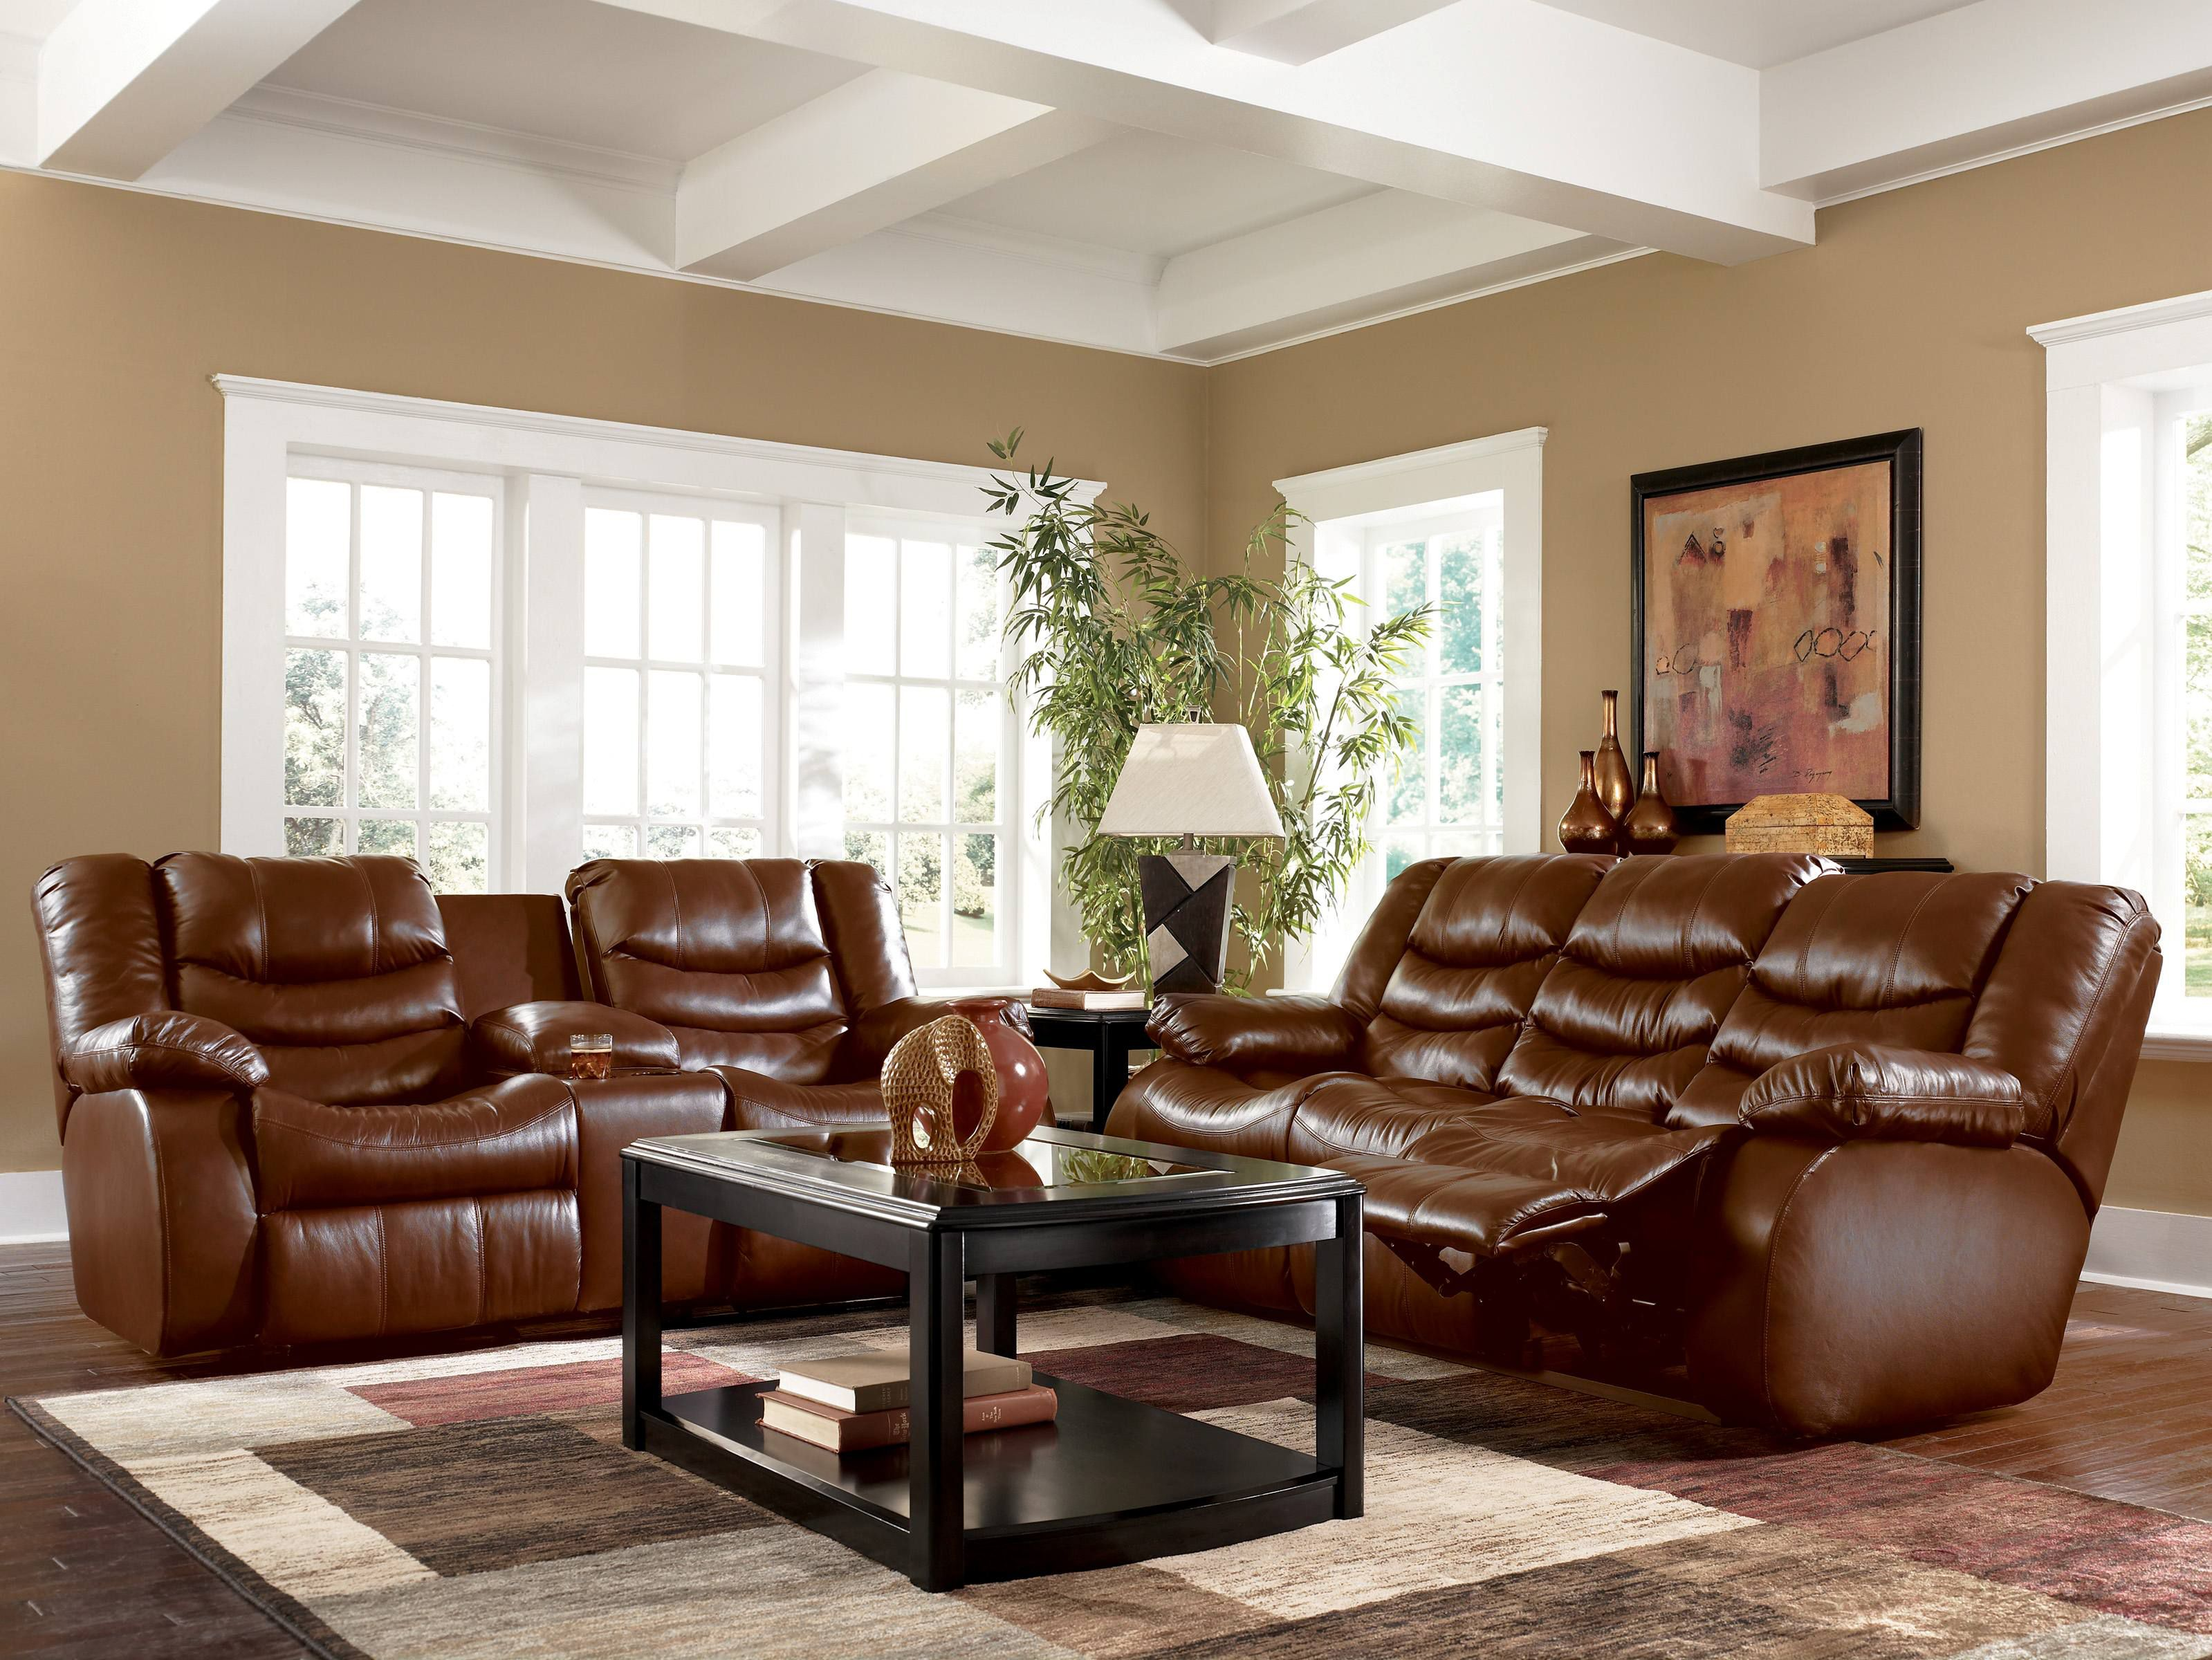 image result for brown leather sofa and brown vinyl floors home rh pinterest ch